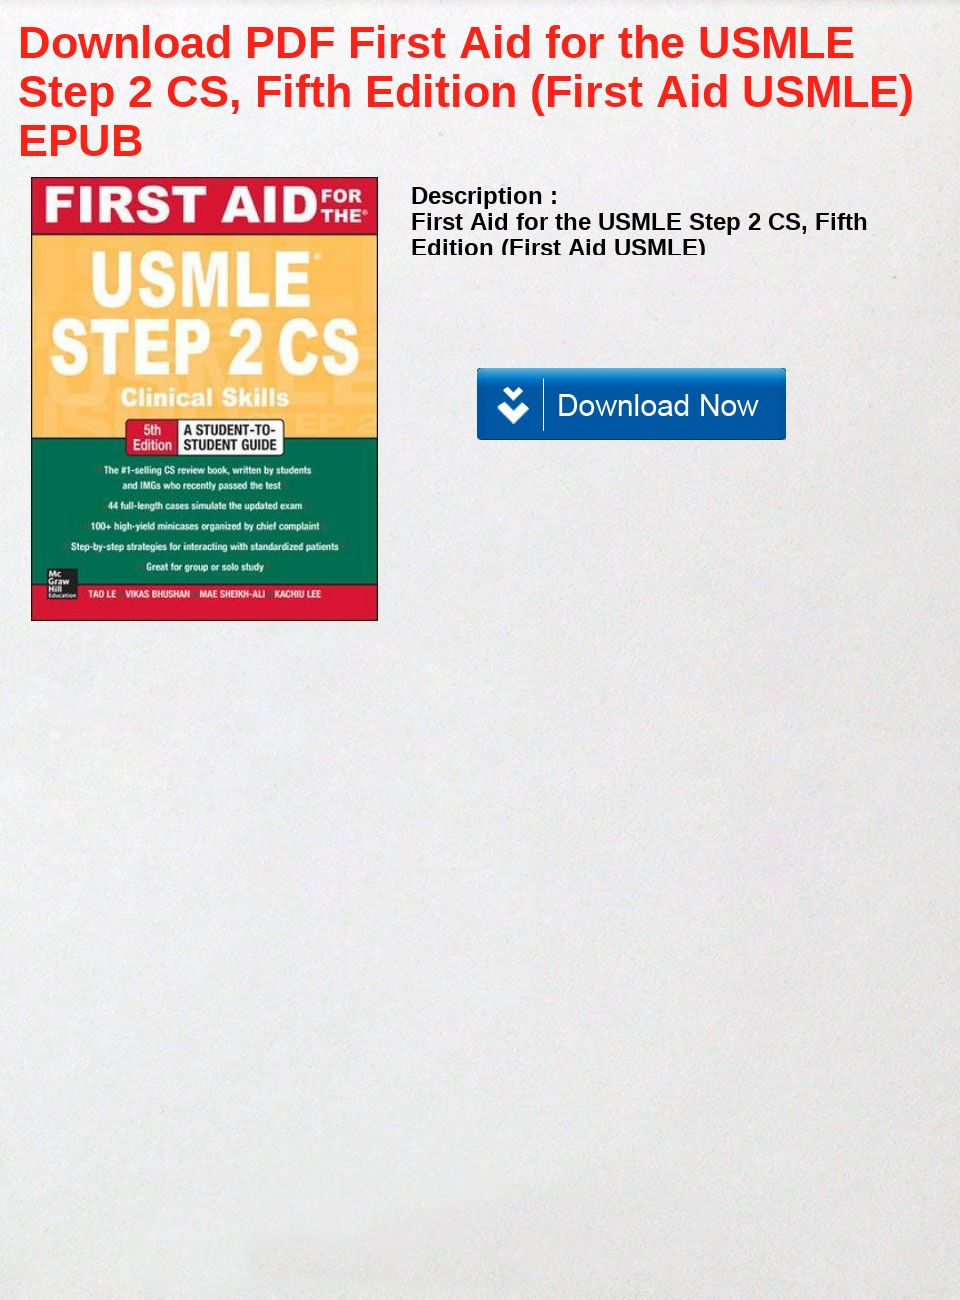 Download PDF First Aid for the USMLE Step 2 CS, Fifth